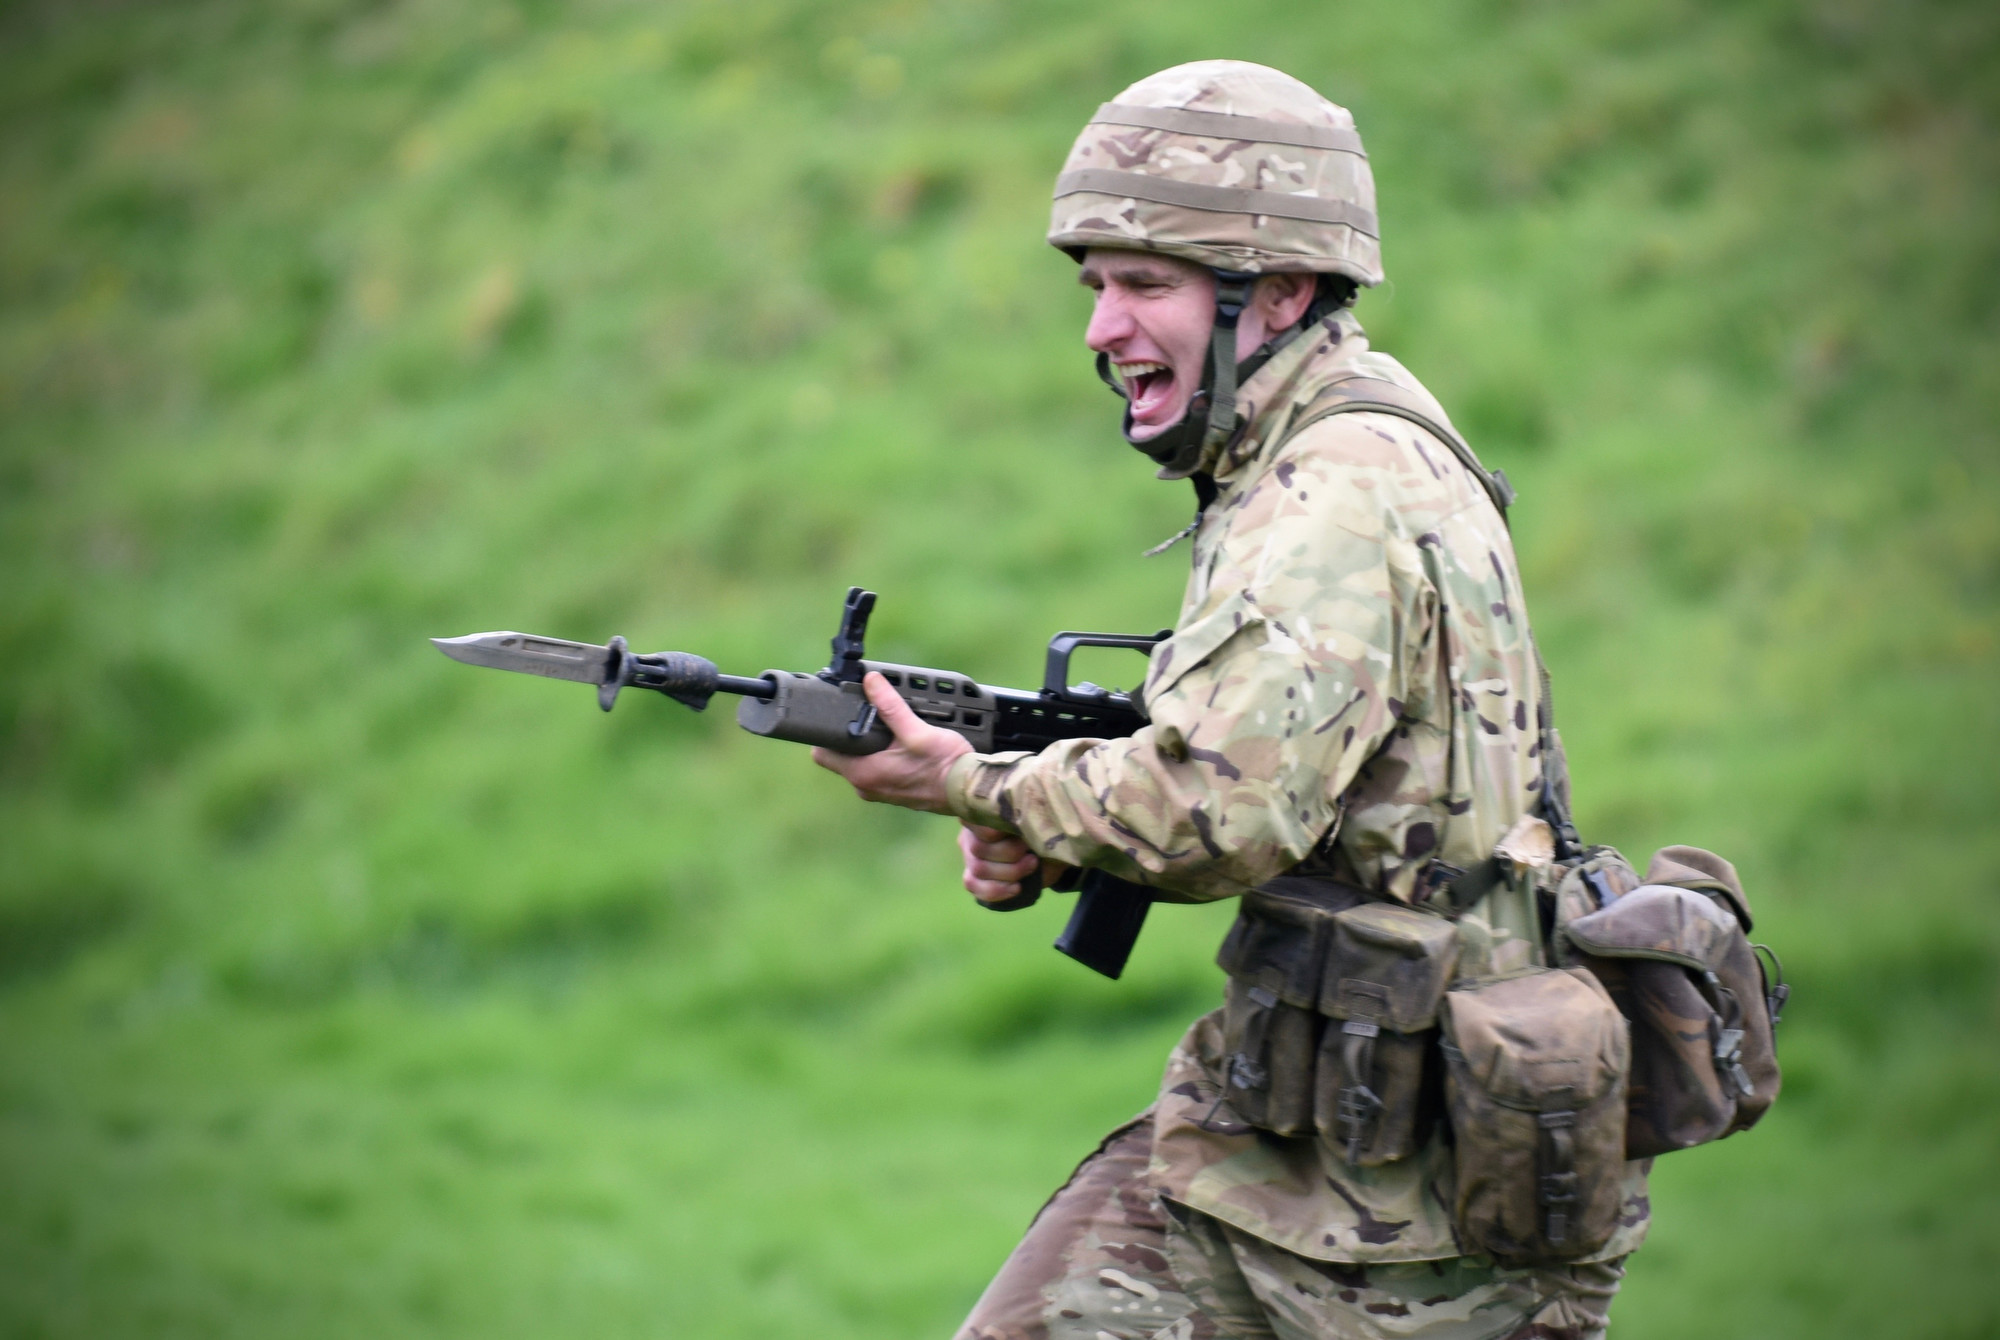 Ranges Bayonet Training Amp Brothers In Arms R Mon Re M